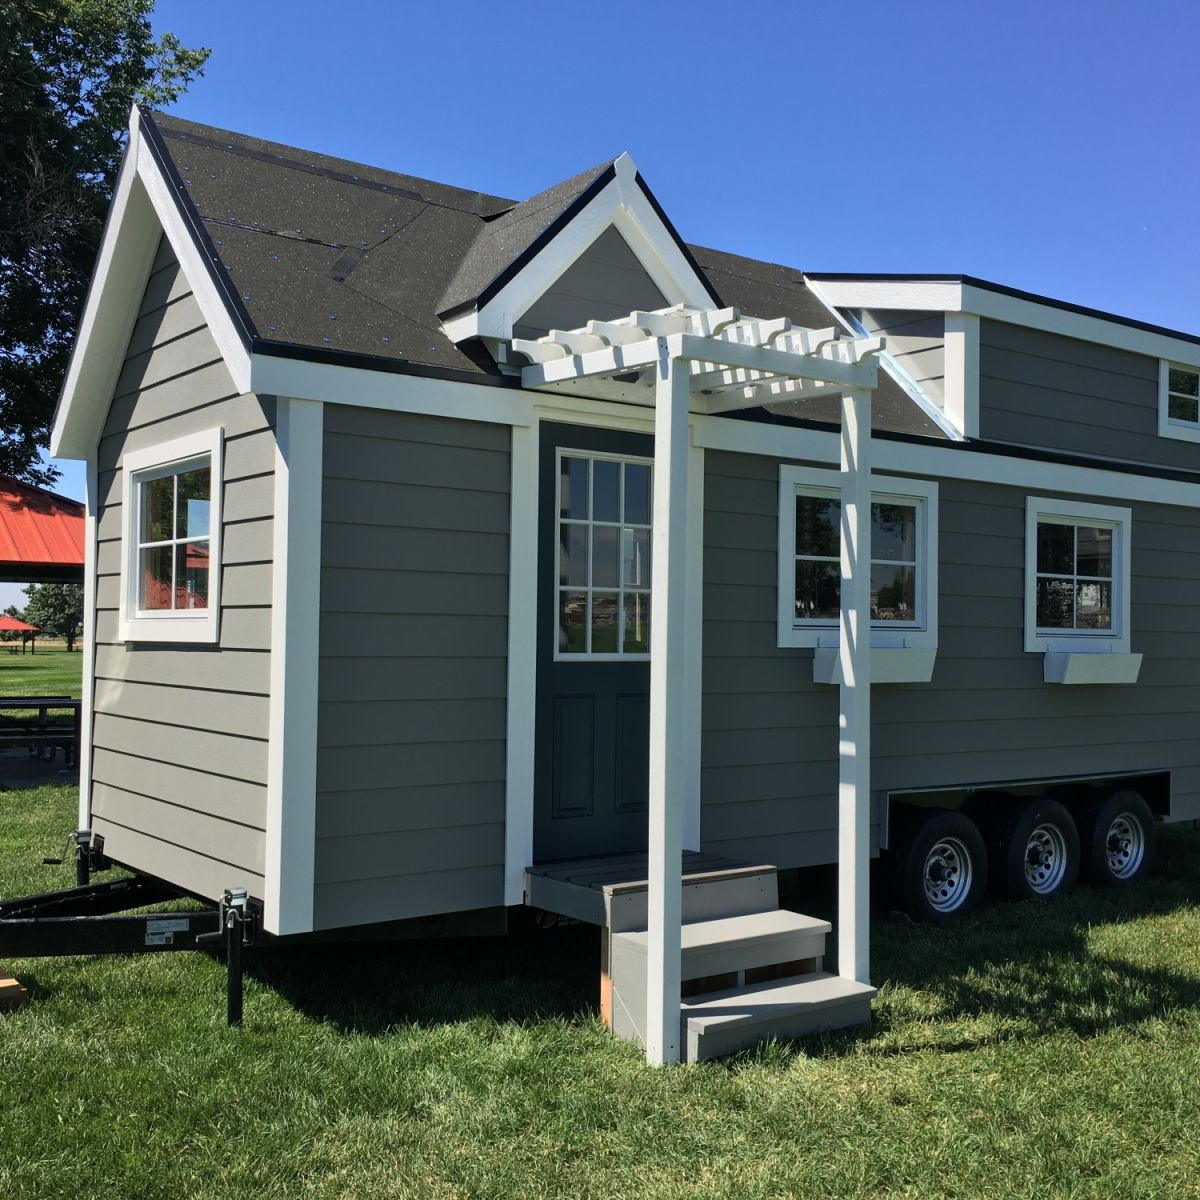 Tiny Houses For Sale In Colorado   Tiny Houses For Sale, Rent And Builders: Tiny  House Listings   Tiny House Listings